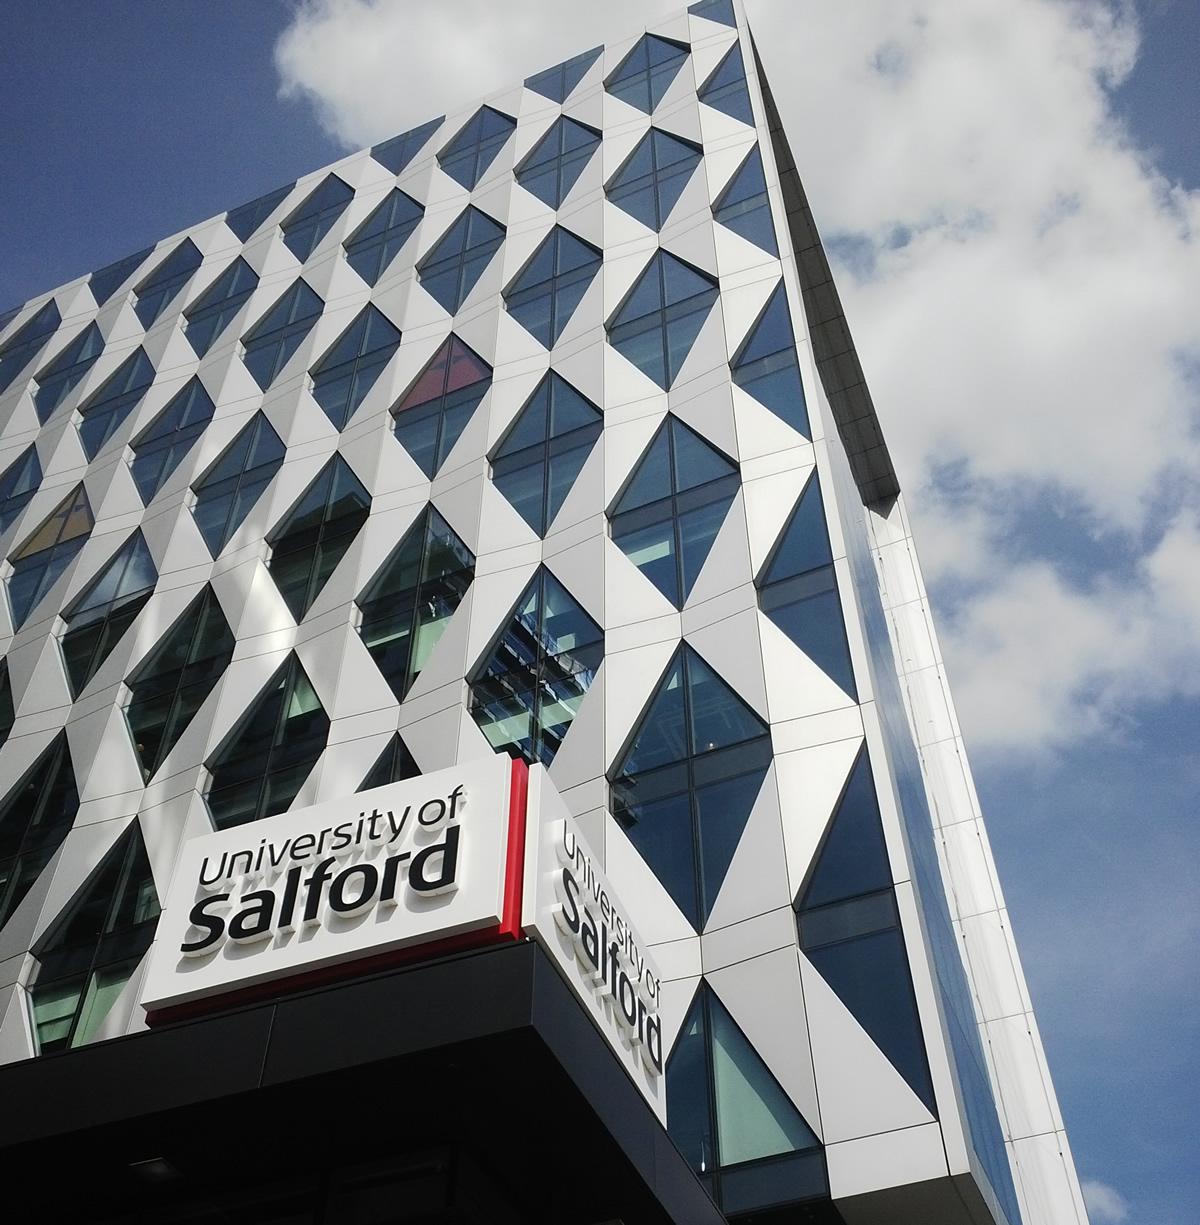 A shot of the University of Salford MediaCityUK building